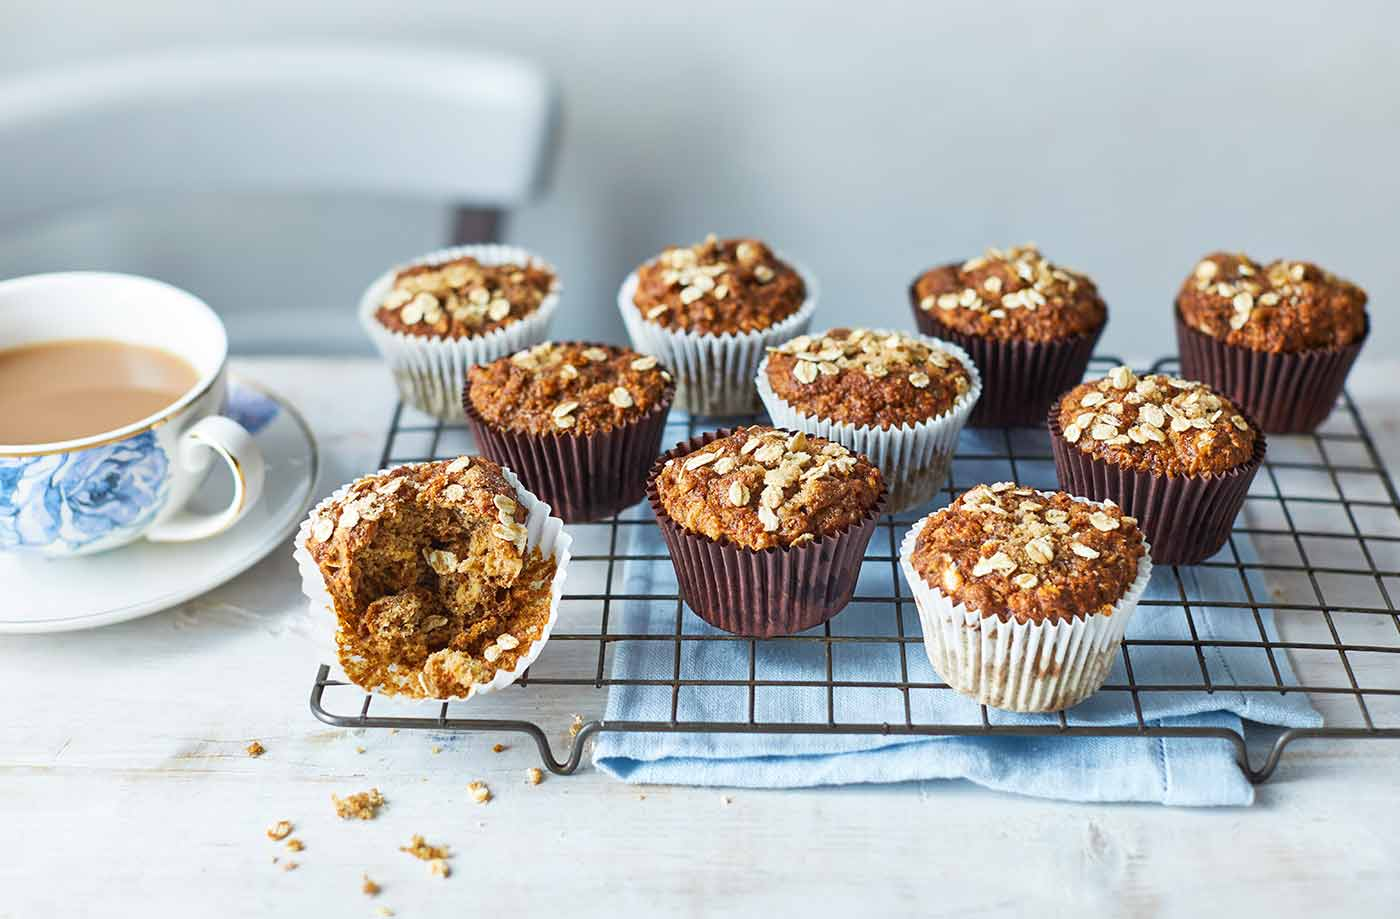 Vegan banana and oat muffins